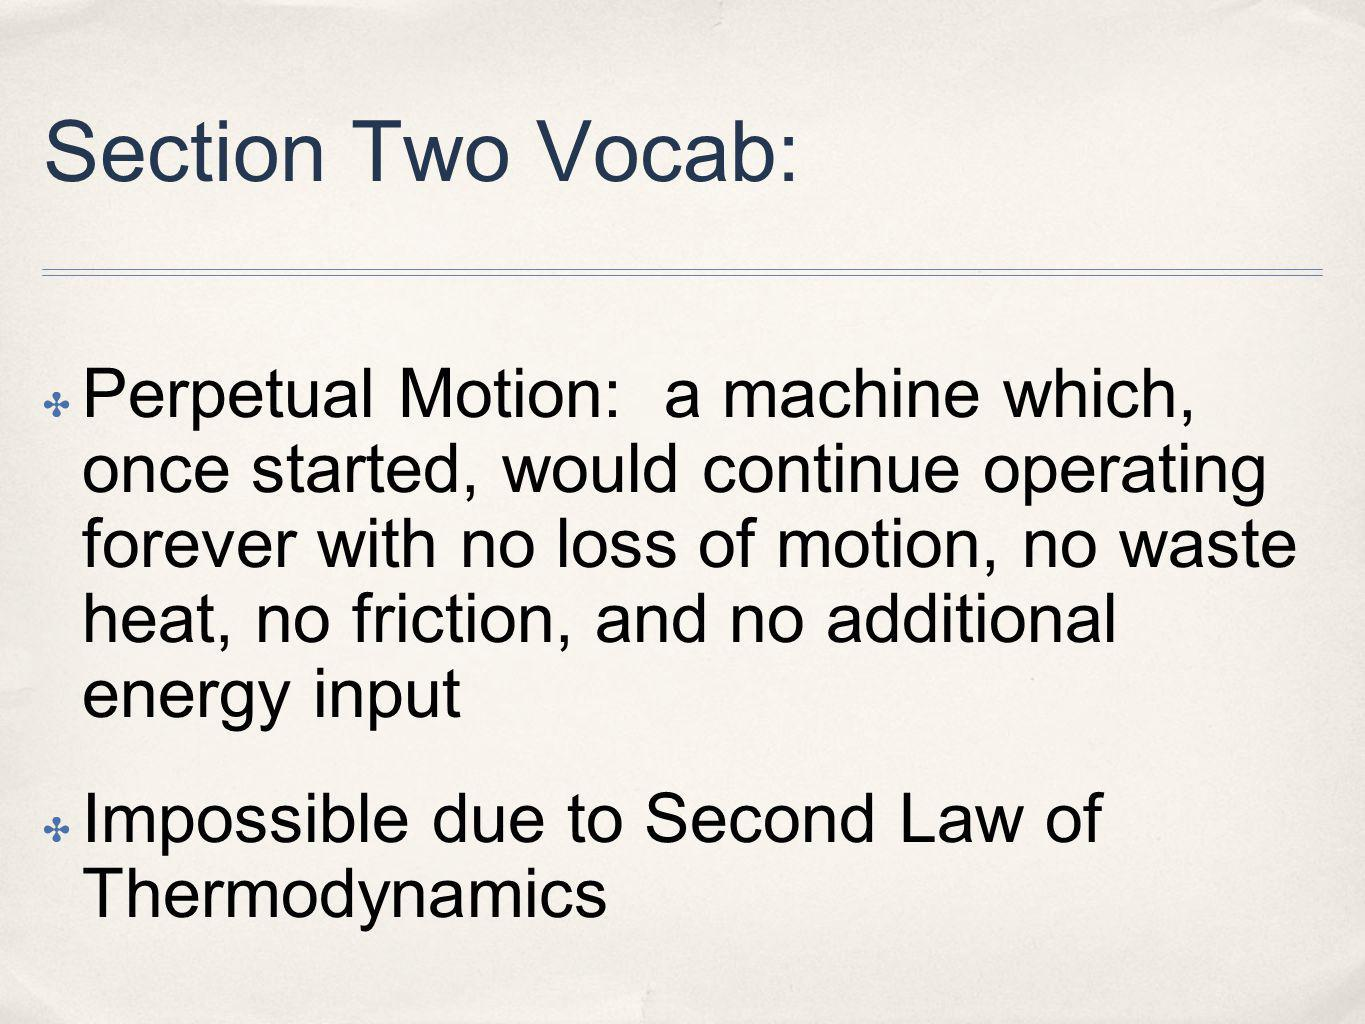 Section Two Vocab: Perpetual Motion: a machine which, once started, would continue operating forever with no loss of motion, no waste heat, no friction, and no additional energy input Impossible due to Second Law of Thermodynamics